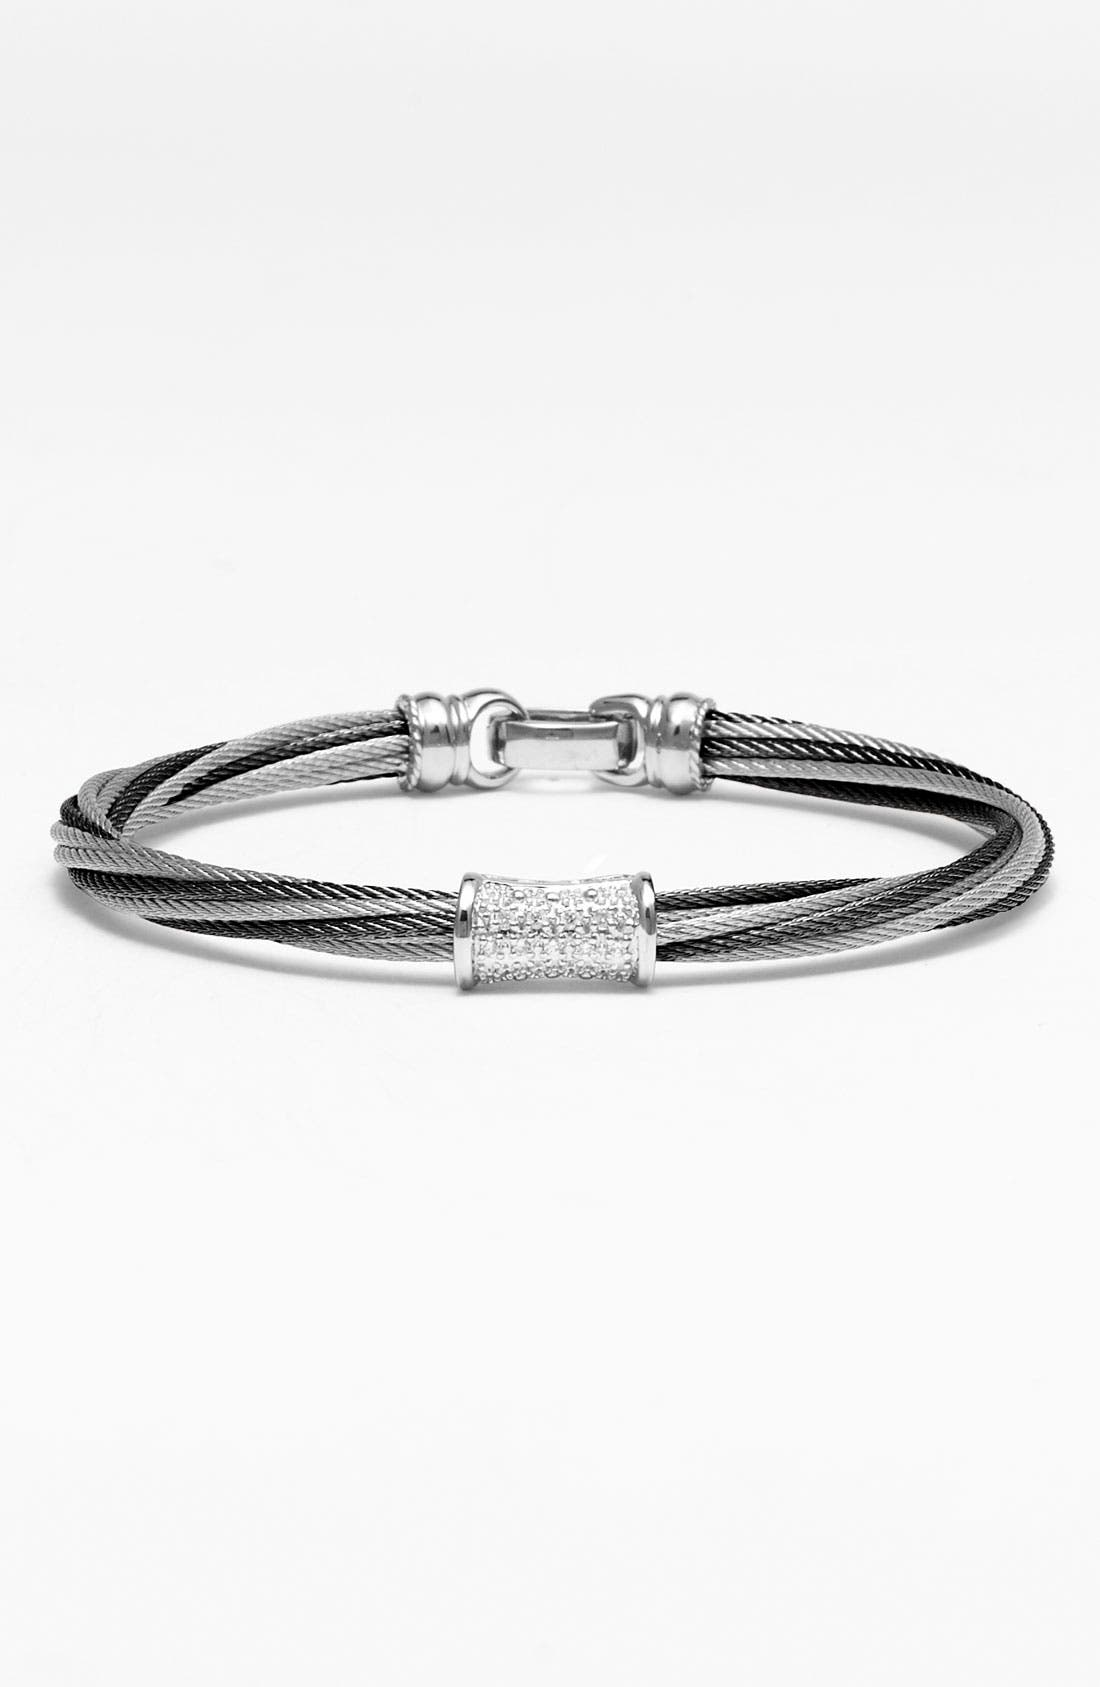 Main Image - ALOR® 'Mixed Modern' Diamond Station Cable Bracelet